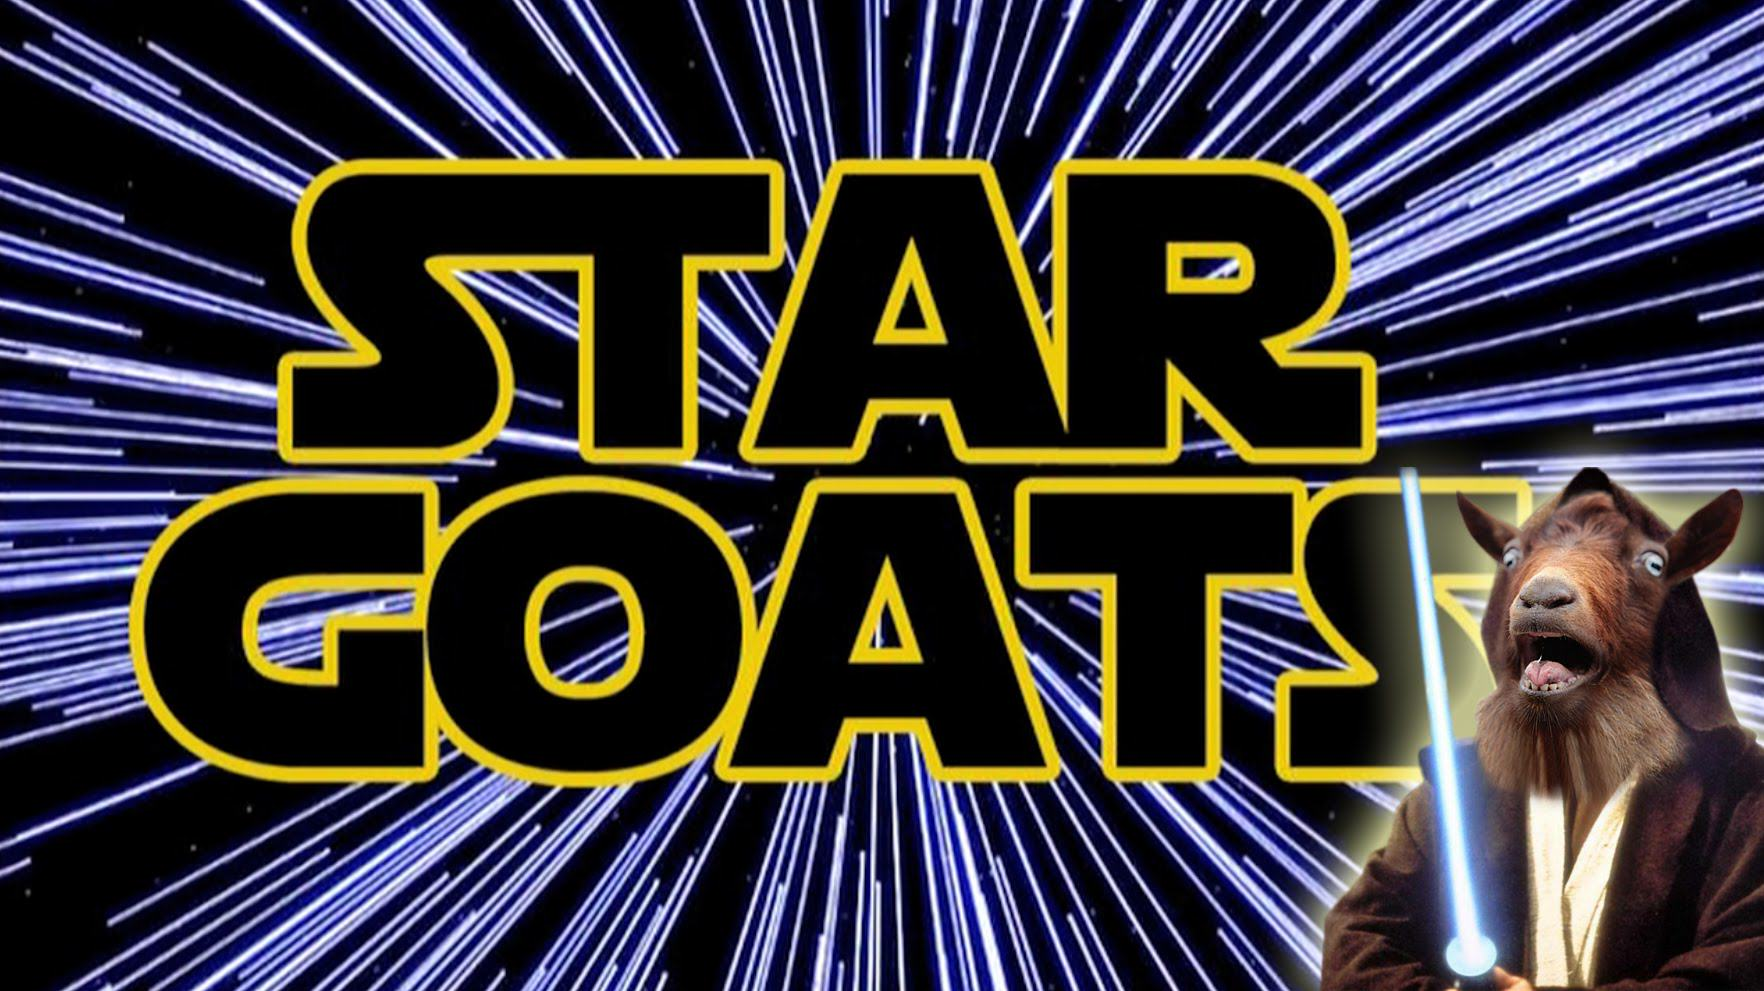 Star Wars Theme Tune Sang By Goats star goats a yelling goats versi